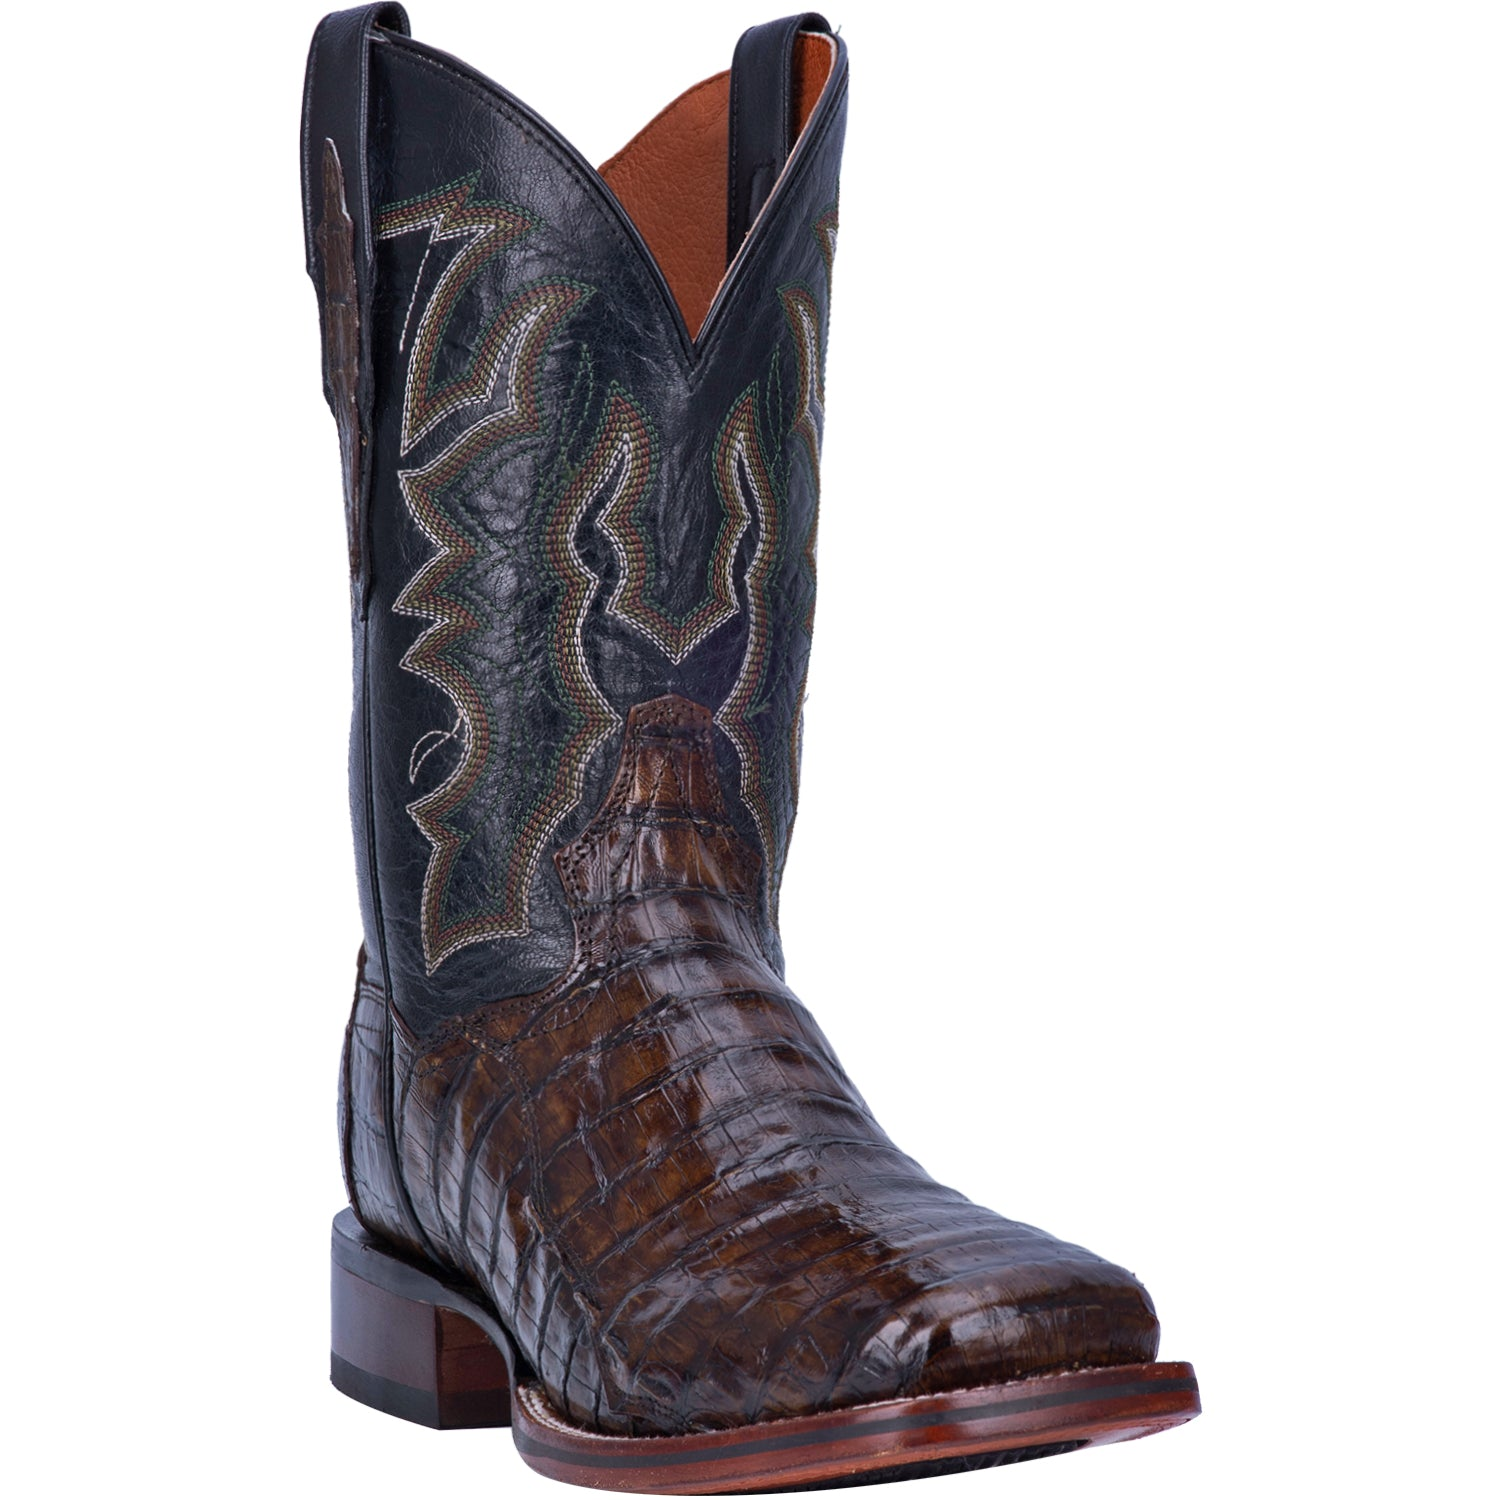 KINGSLY CAIMAN BOOT 5547779555370